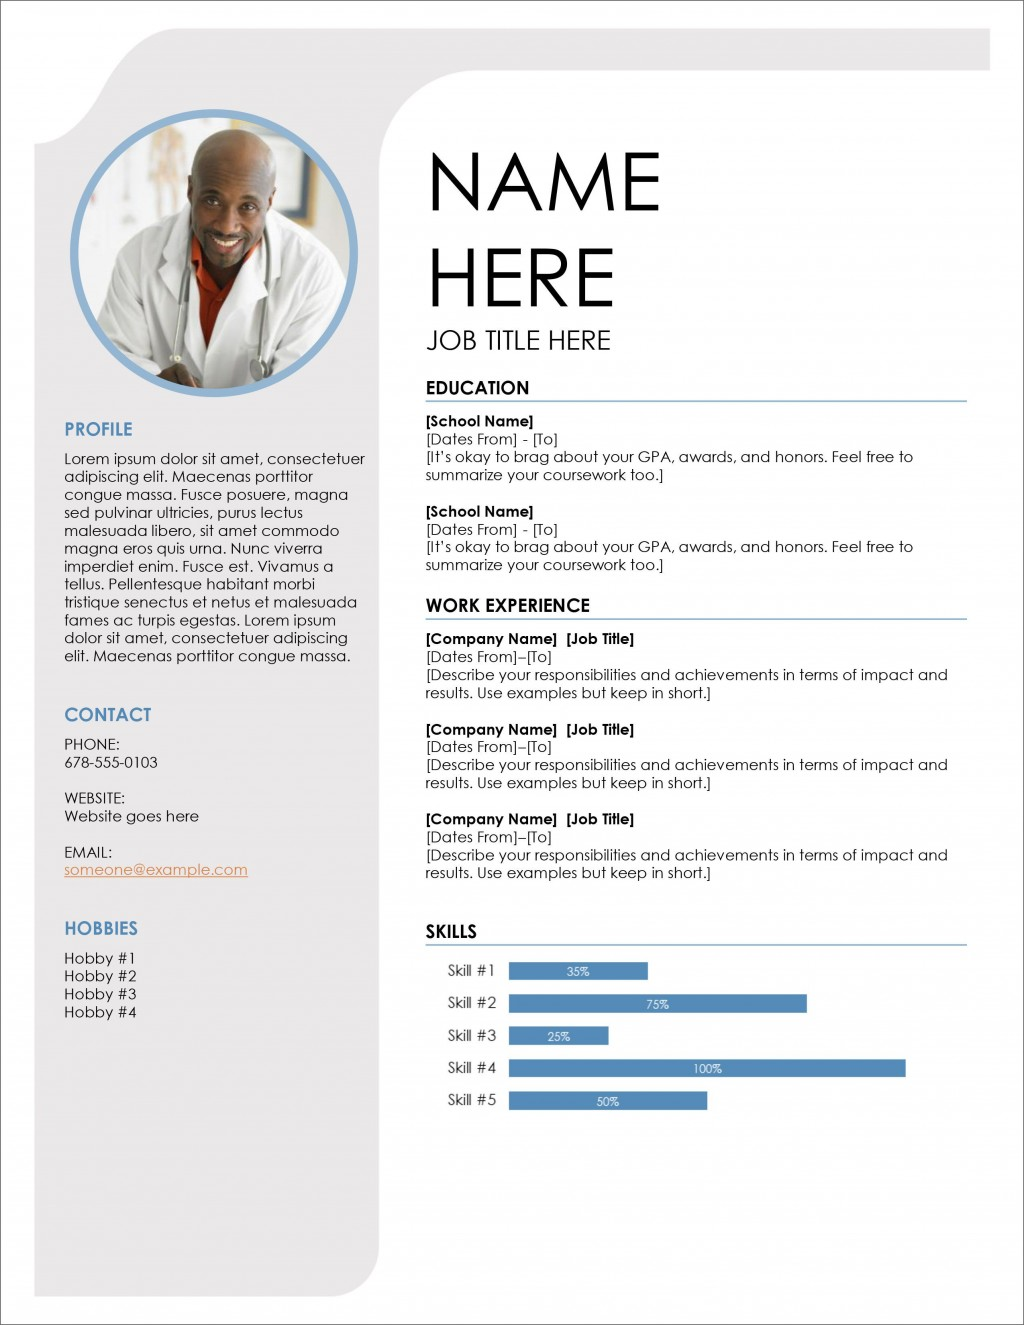 004 Marvelou Resume Sample Template Microsoft Word 2007 Inspiration Large